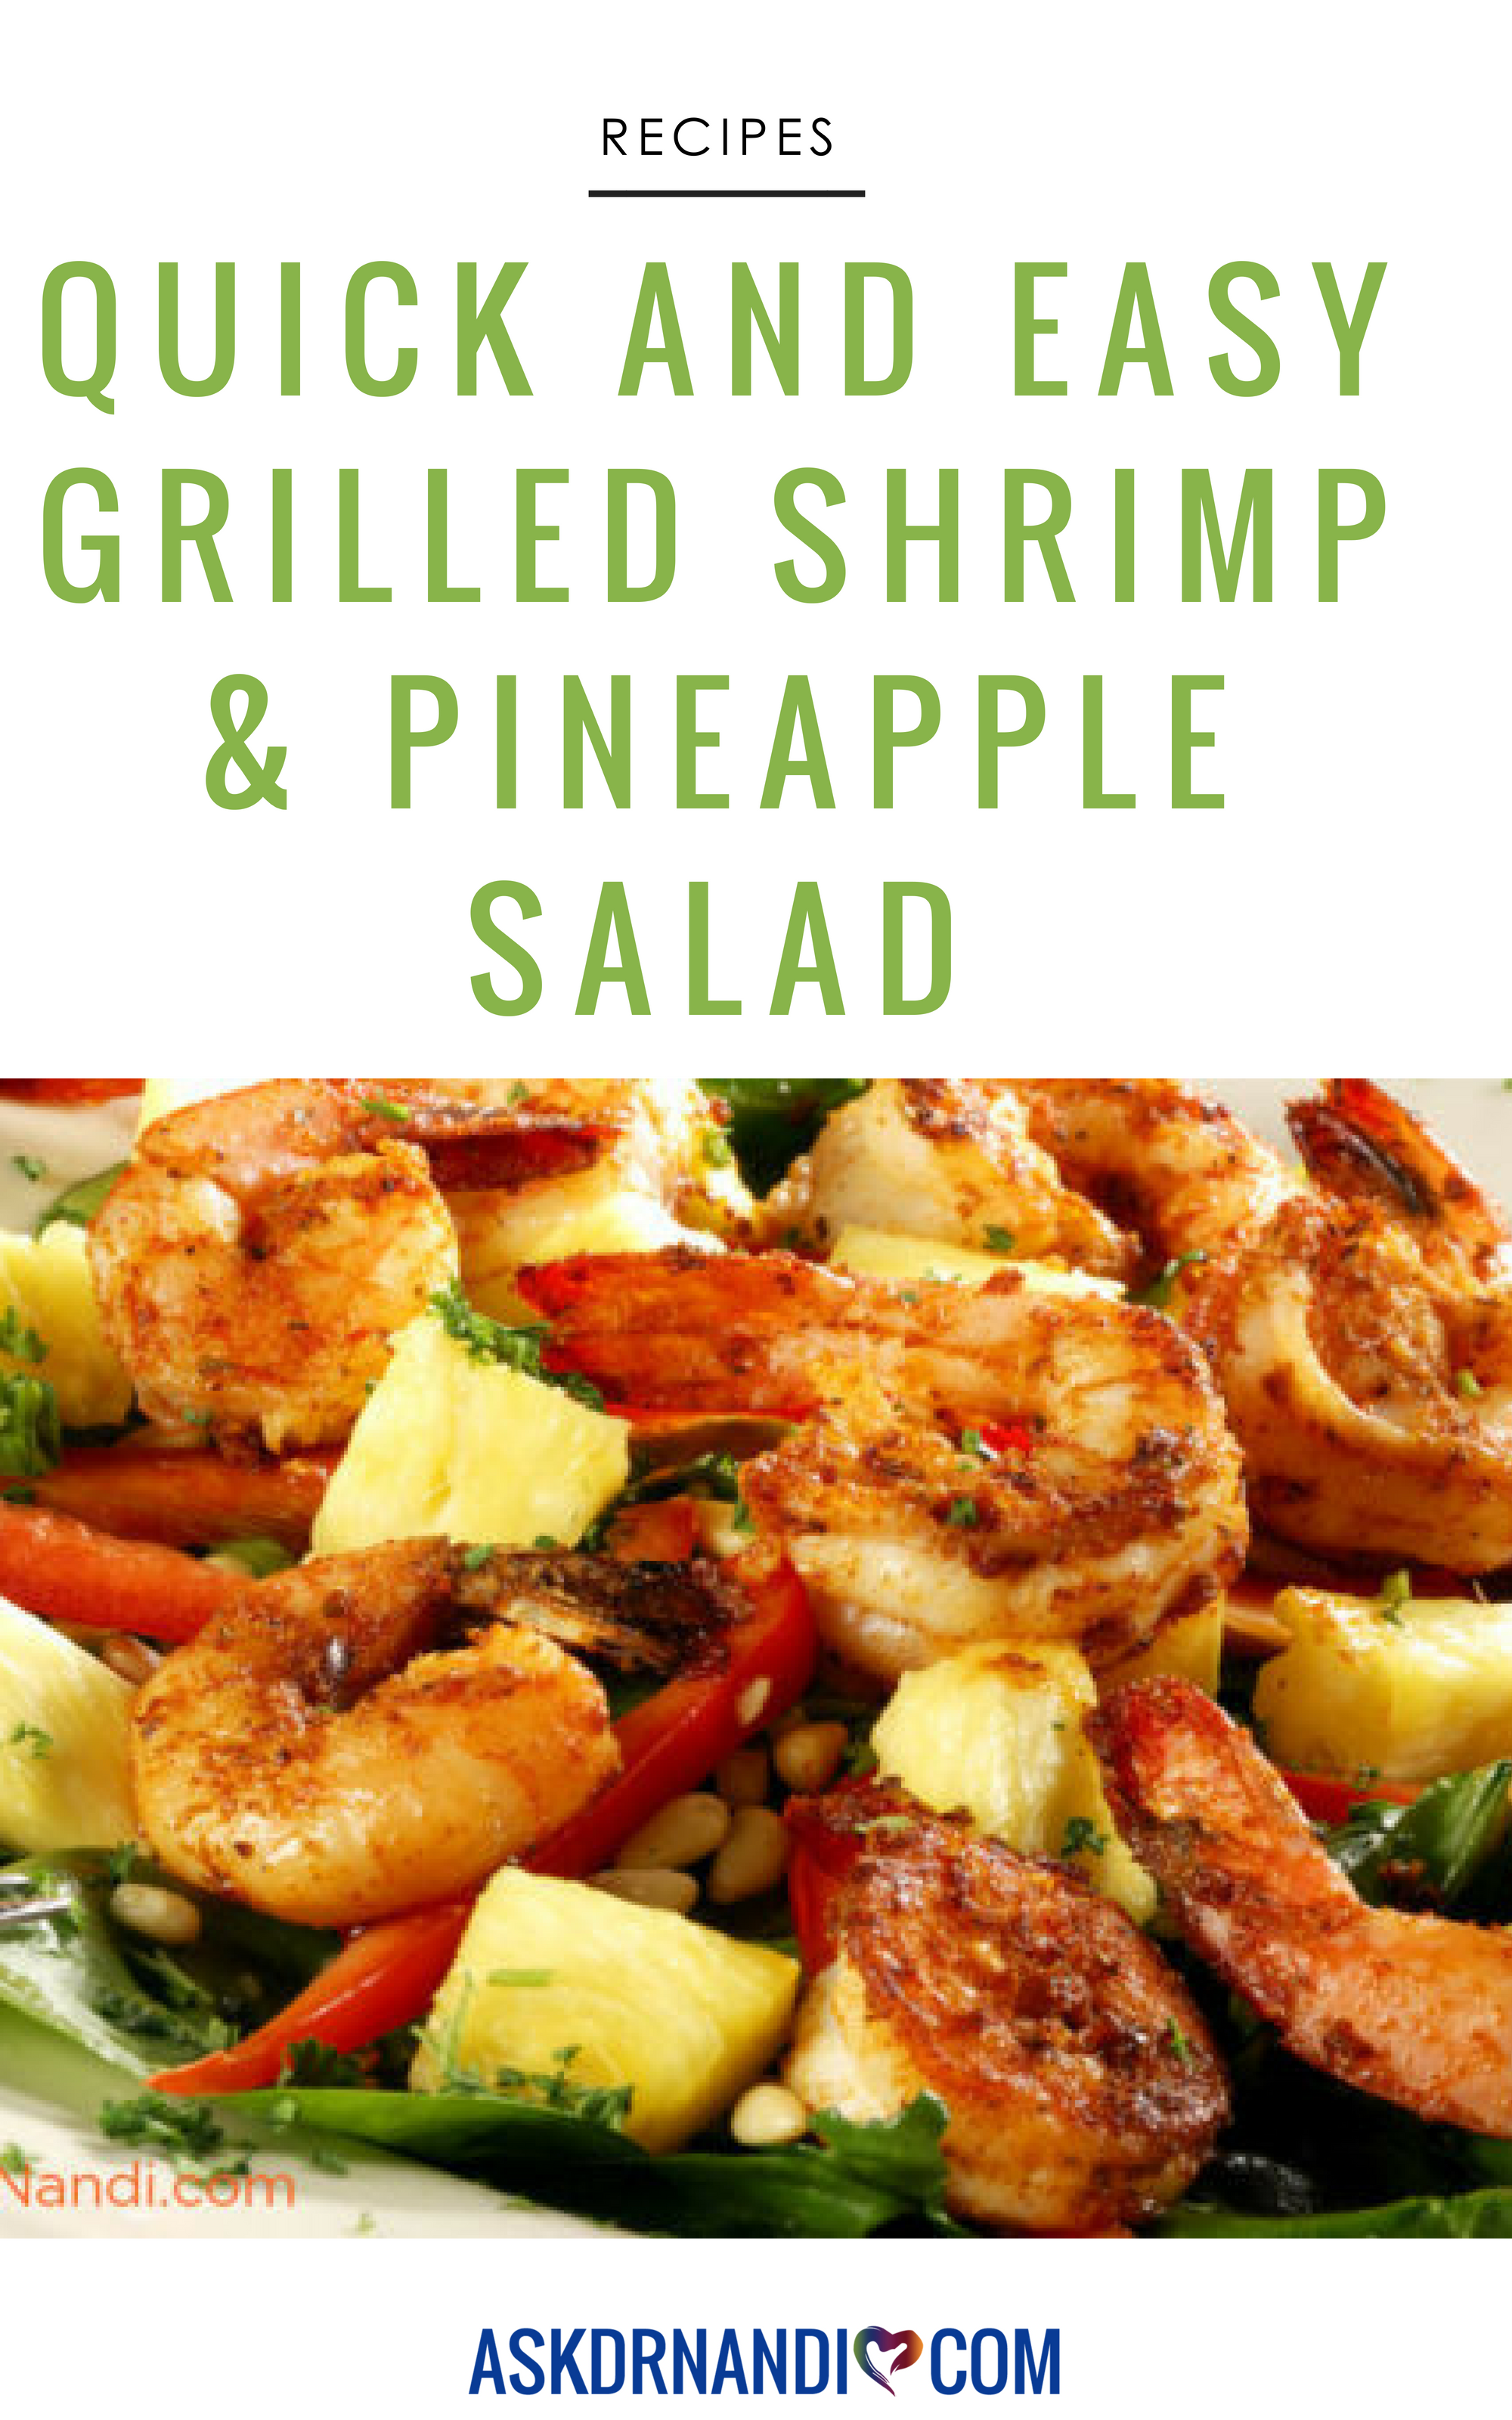 This Pineapple And Shrimp Salad Is Going To Be Your New Go To For Any Bbq Recipe Healthy Food Recipes Clean Eating Organic Recipes Delicious Healthy Recipes